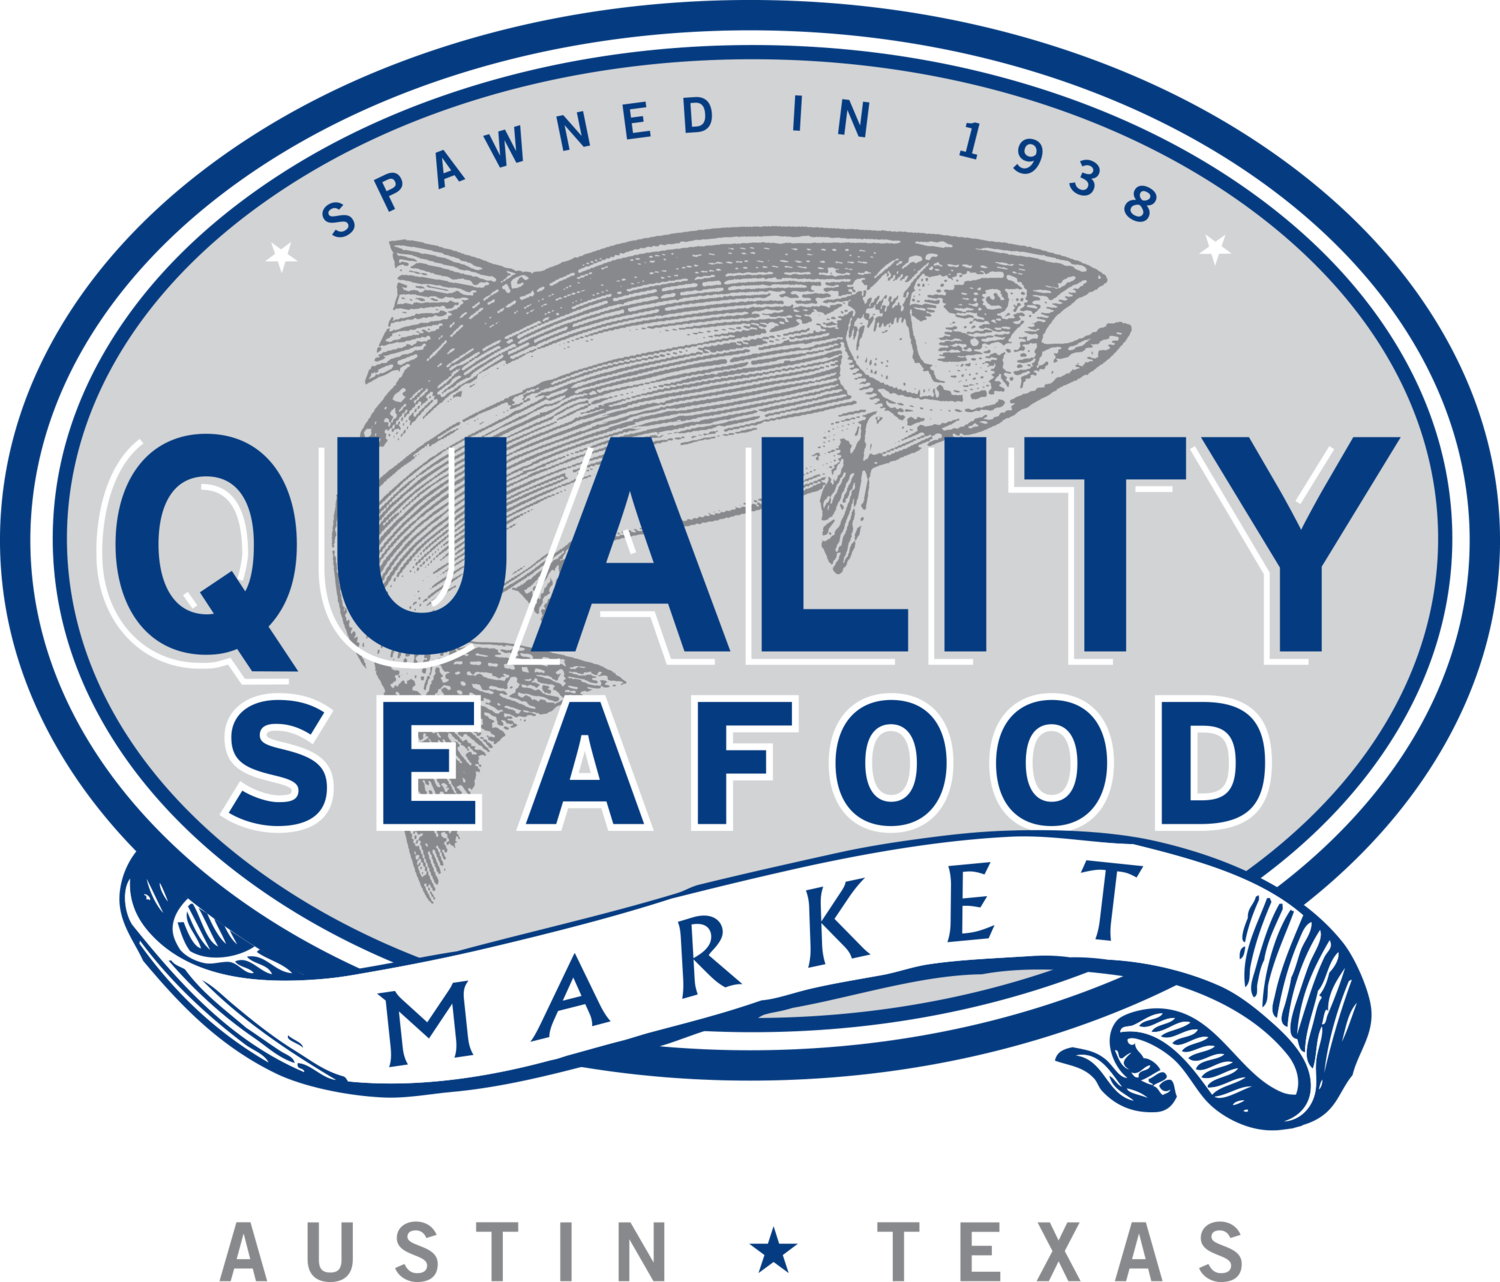 jpg transparent download Fish market clipart. Quality seafood